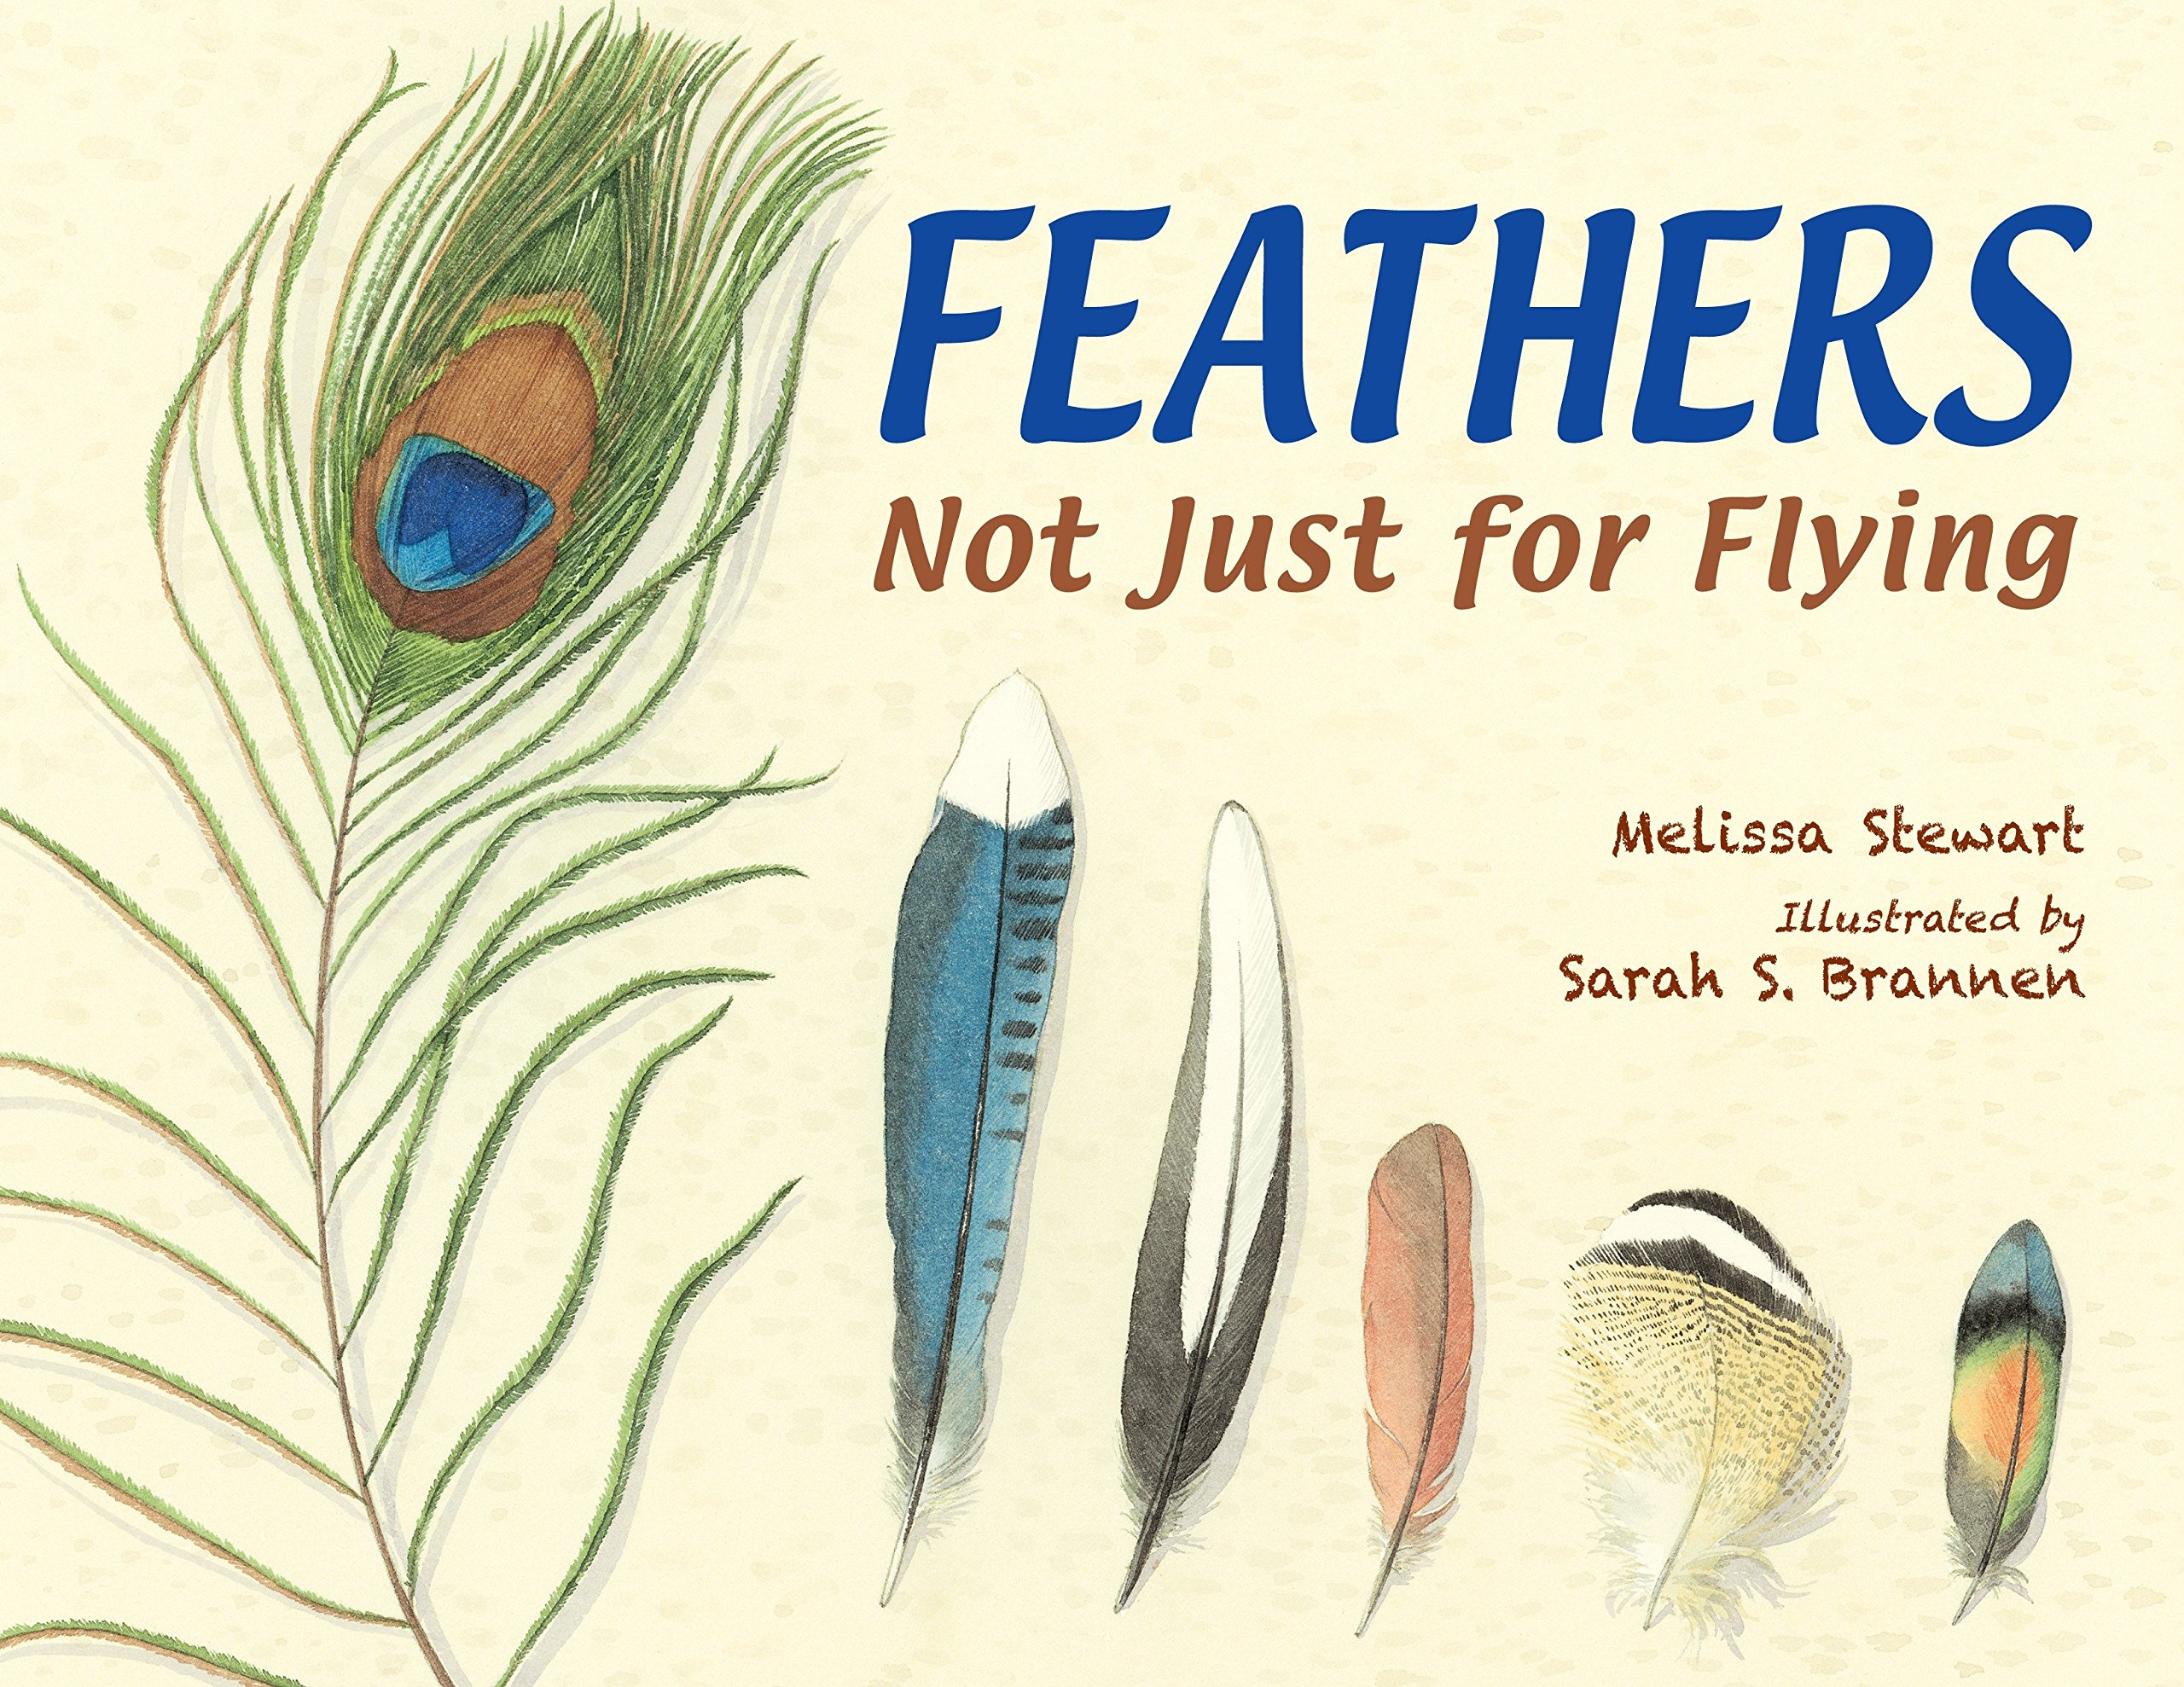 feathers not just for flying melissa stewart sarah s brannen